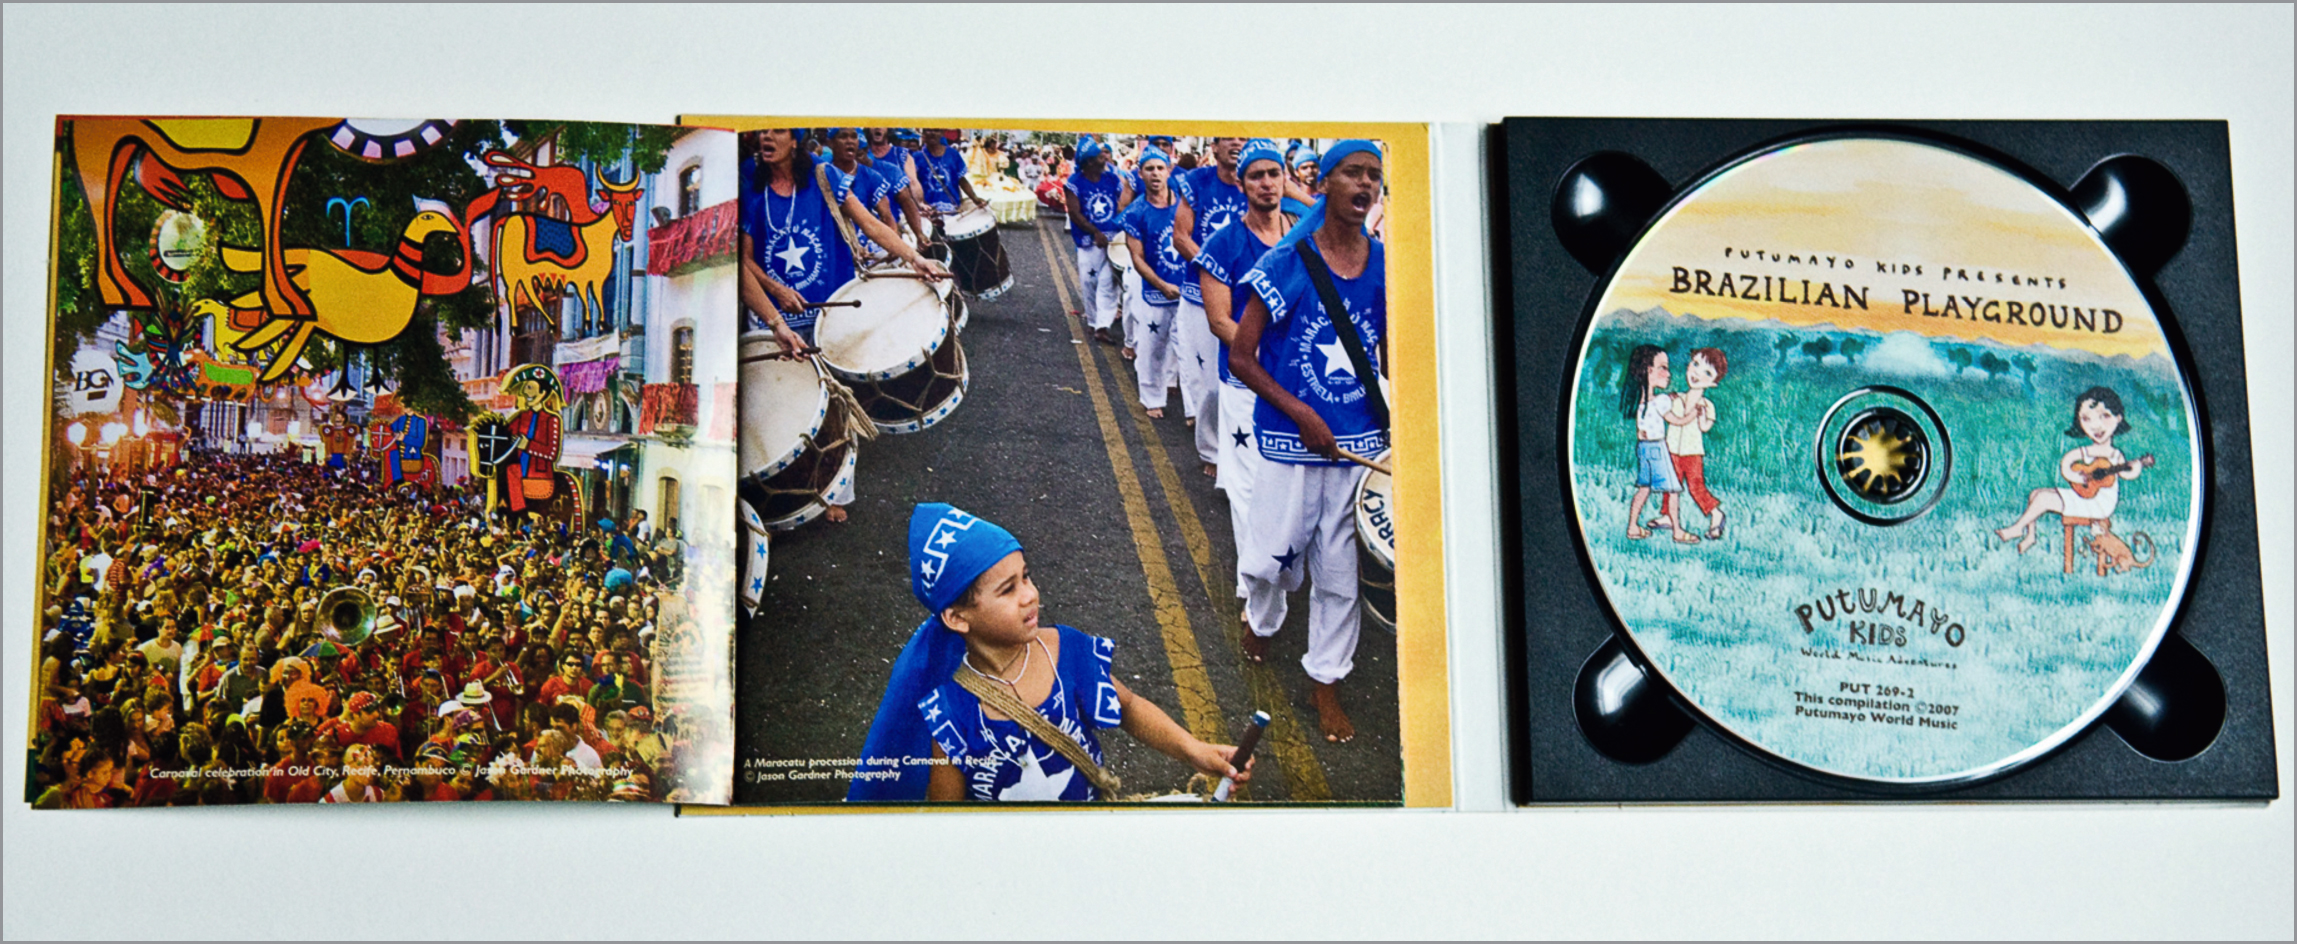 Images published on the inside of the notes for the compilation of Brazilian children's music for Putumayo Records.